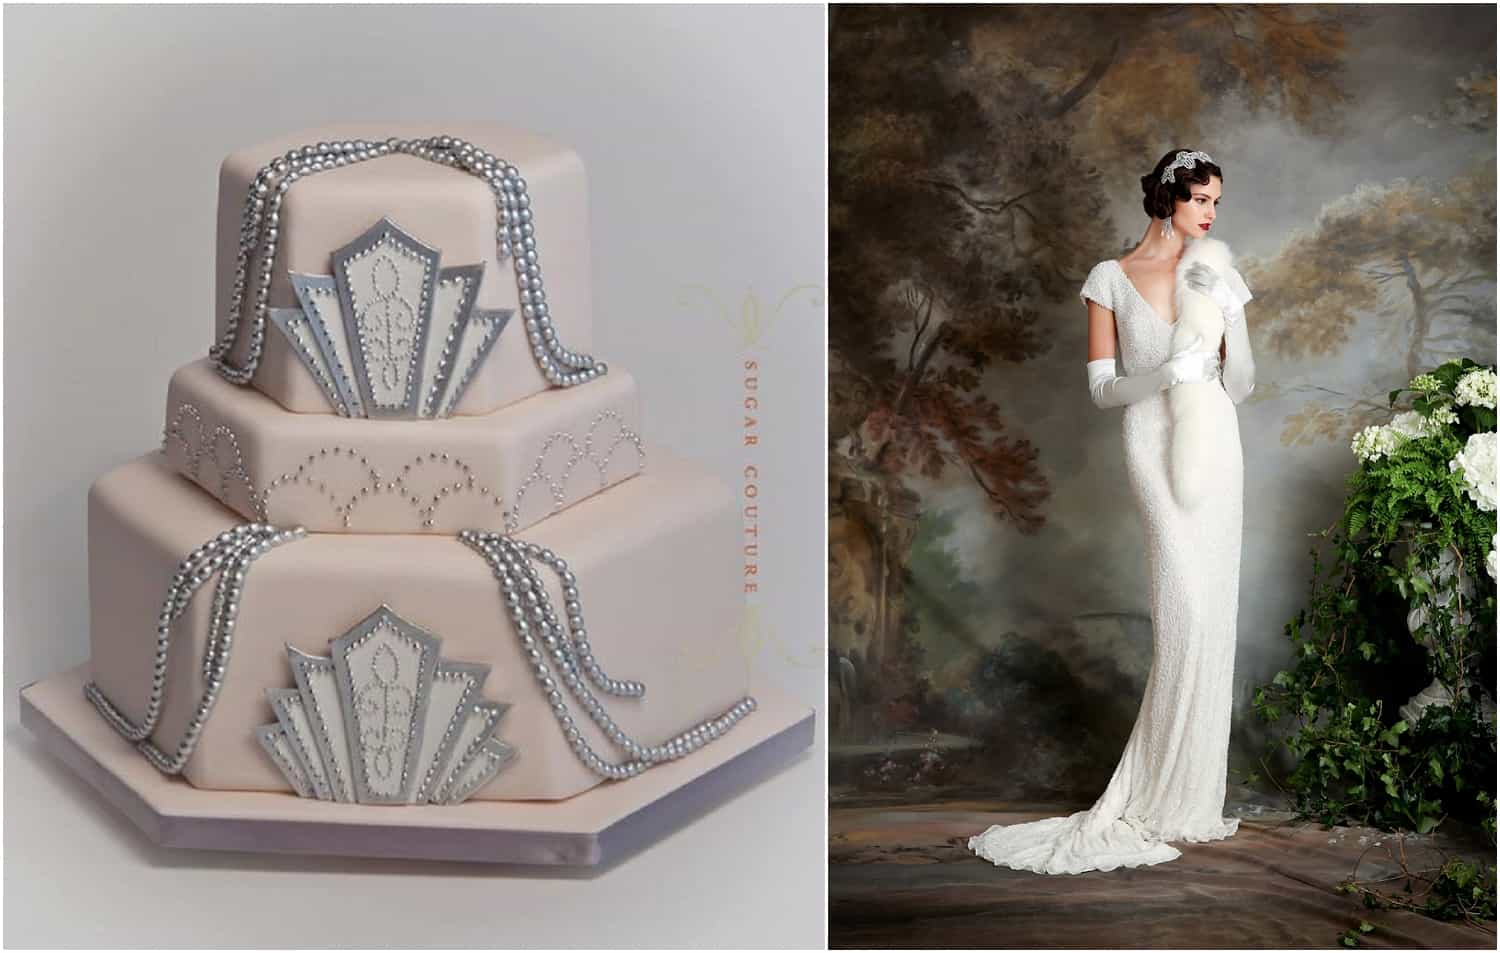 1920s wedding cake, 1920s wedding dress